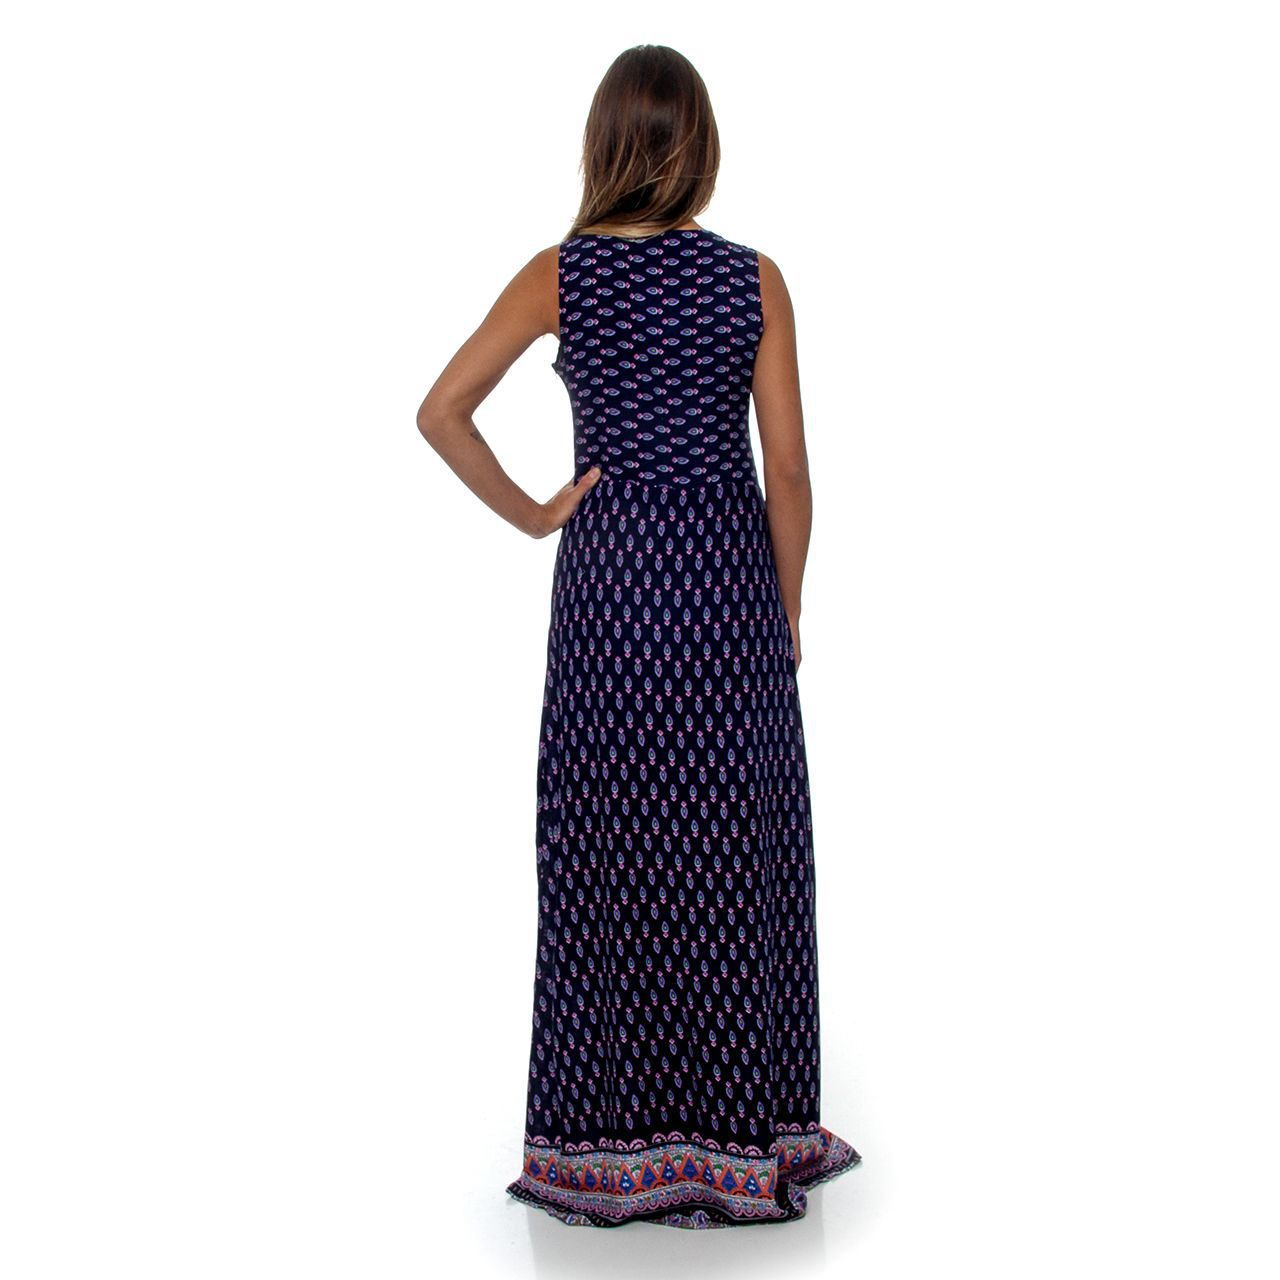 Vestido Regata Viscose Barrado